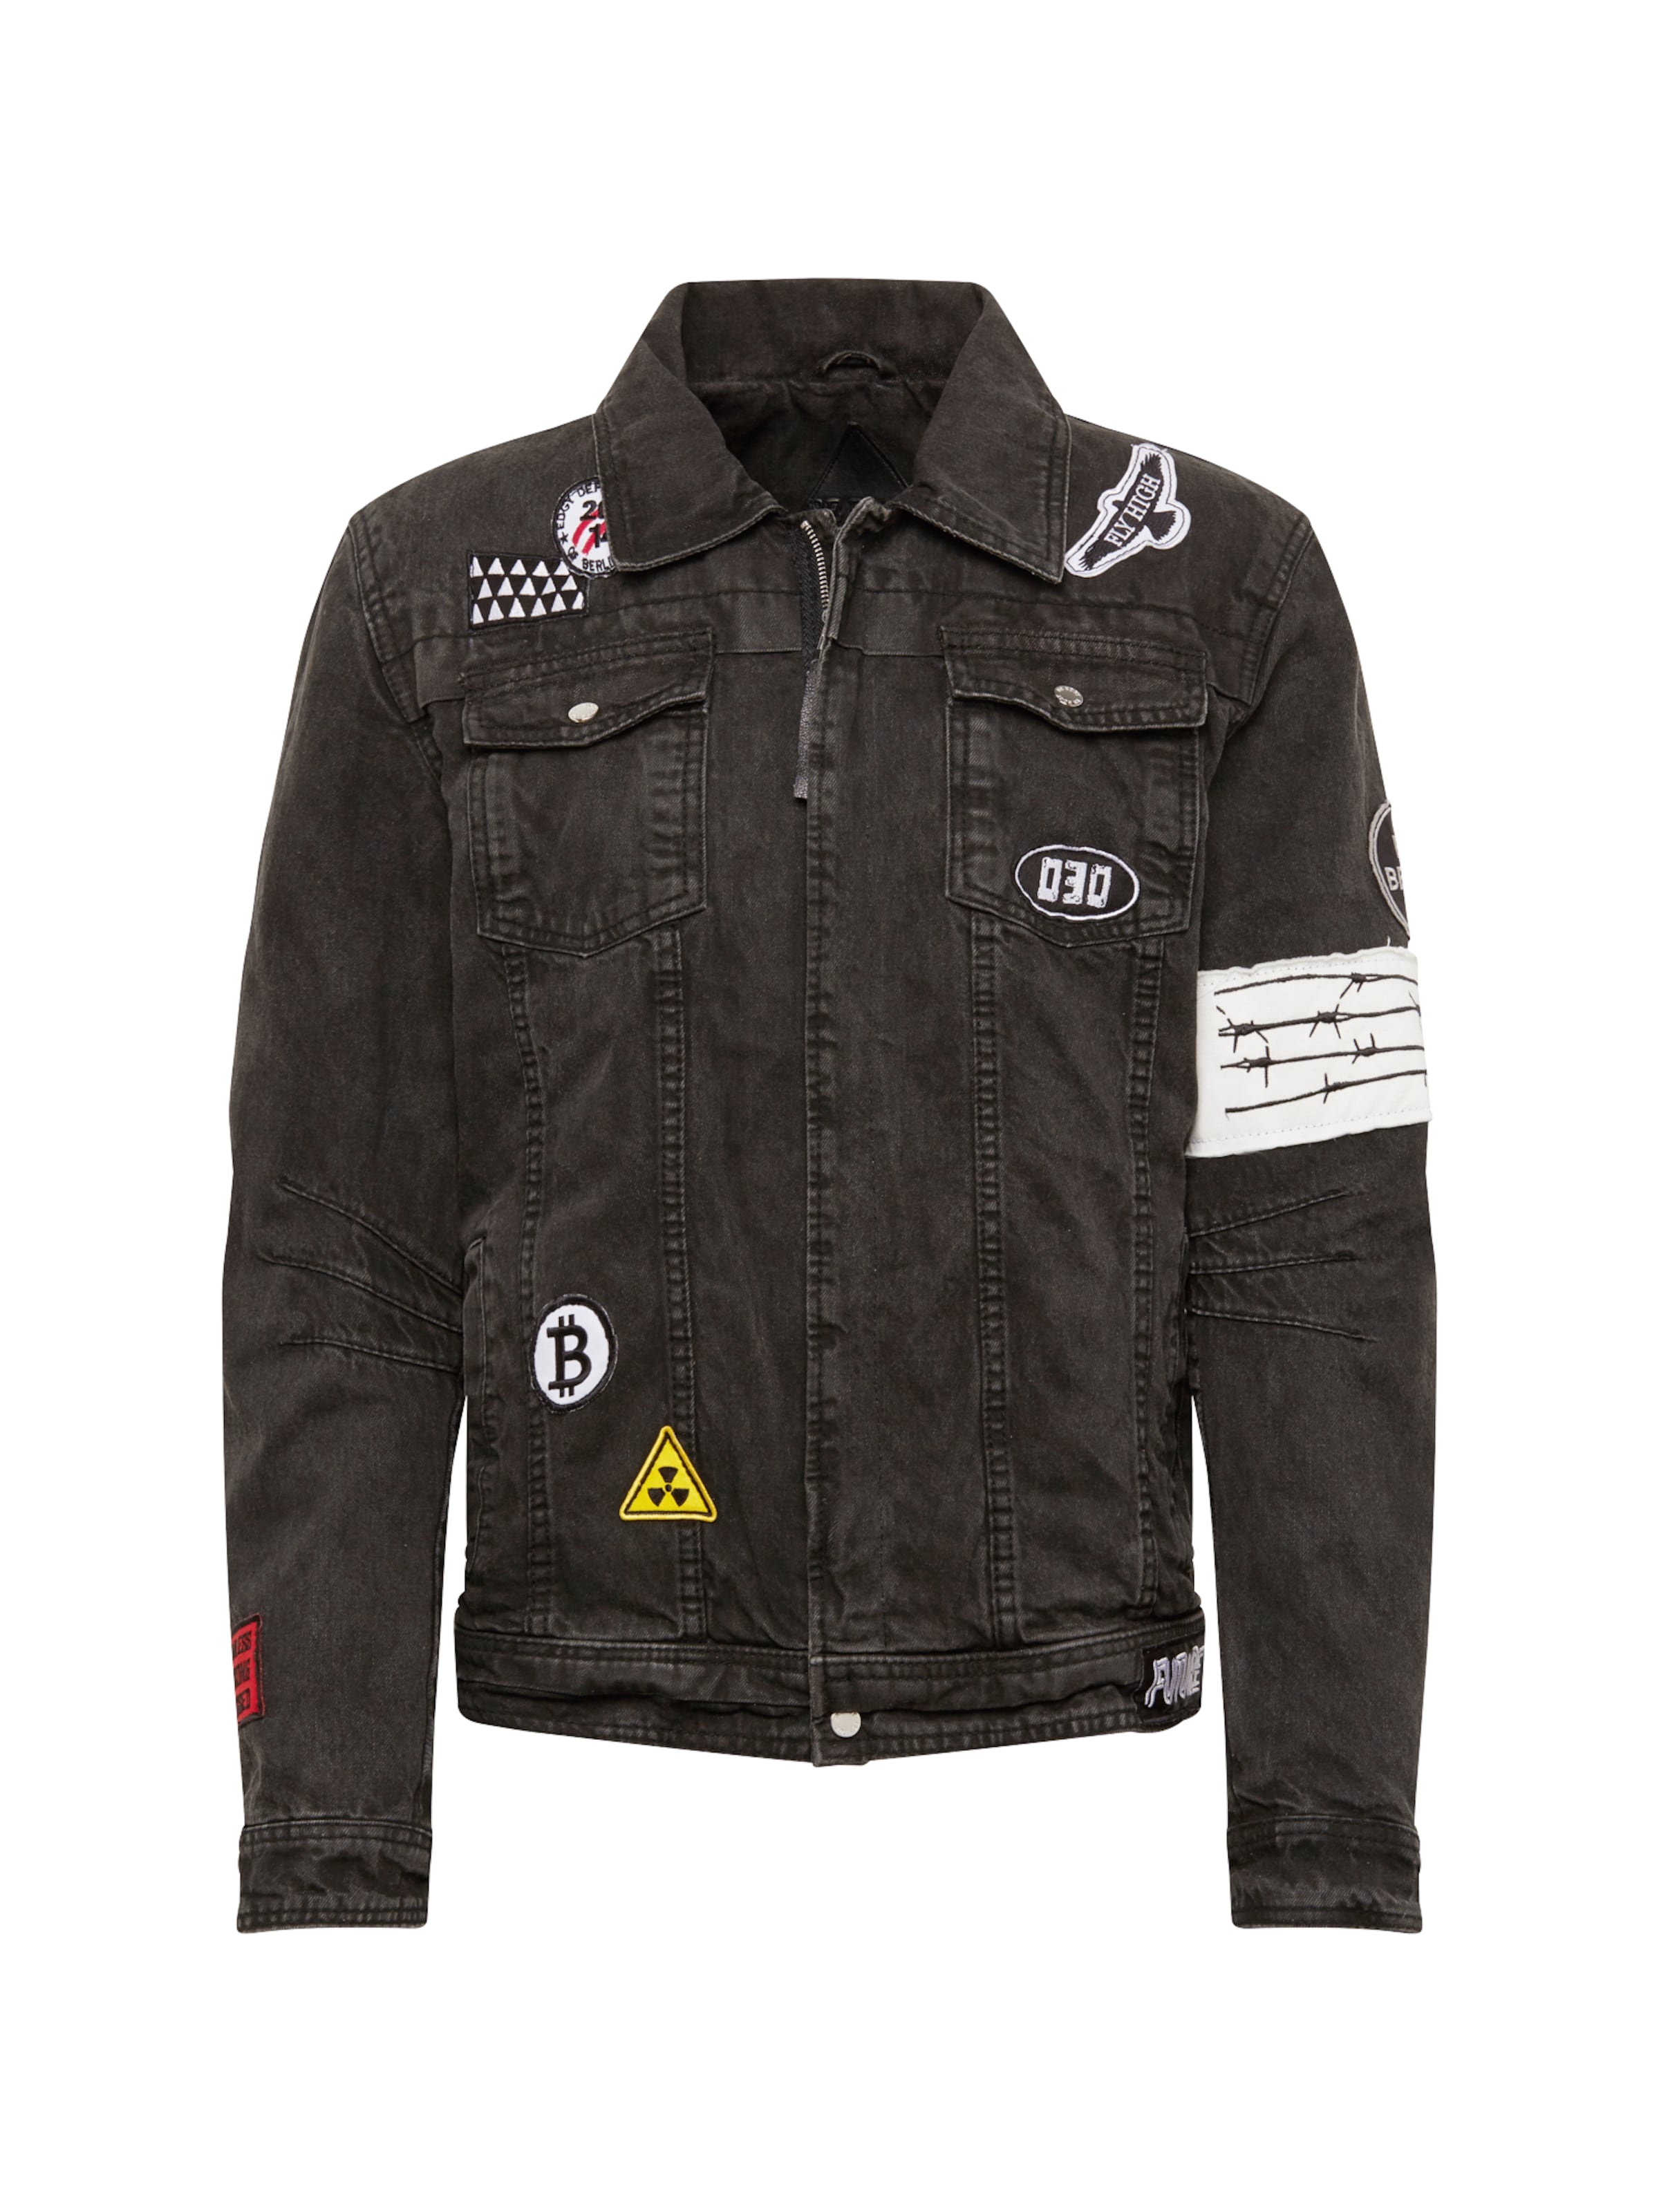 Veste En Edgy 'bedusty Noir D' Denim Be Mi saison CBdxoe